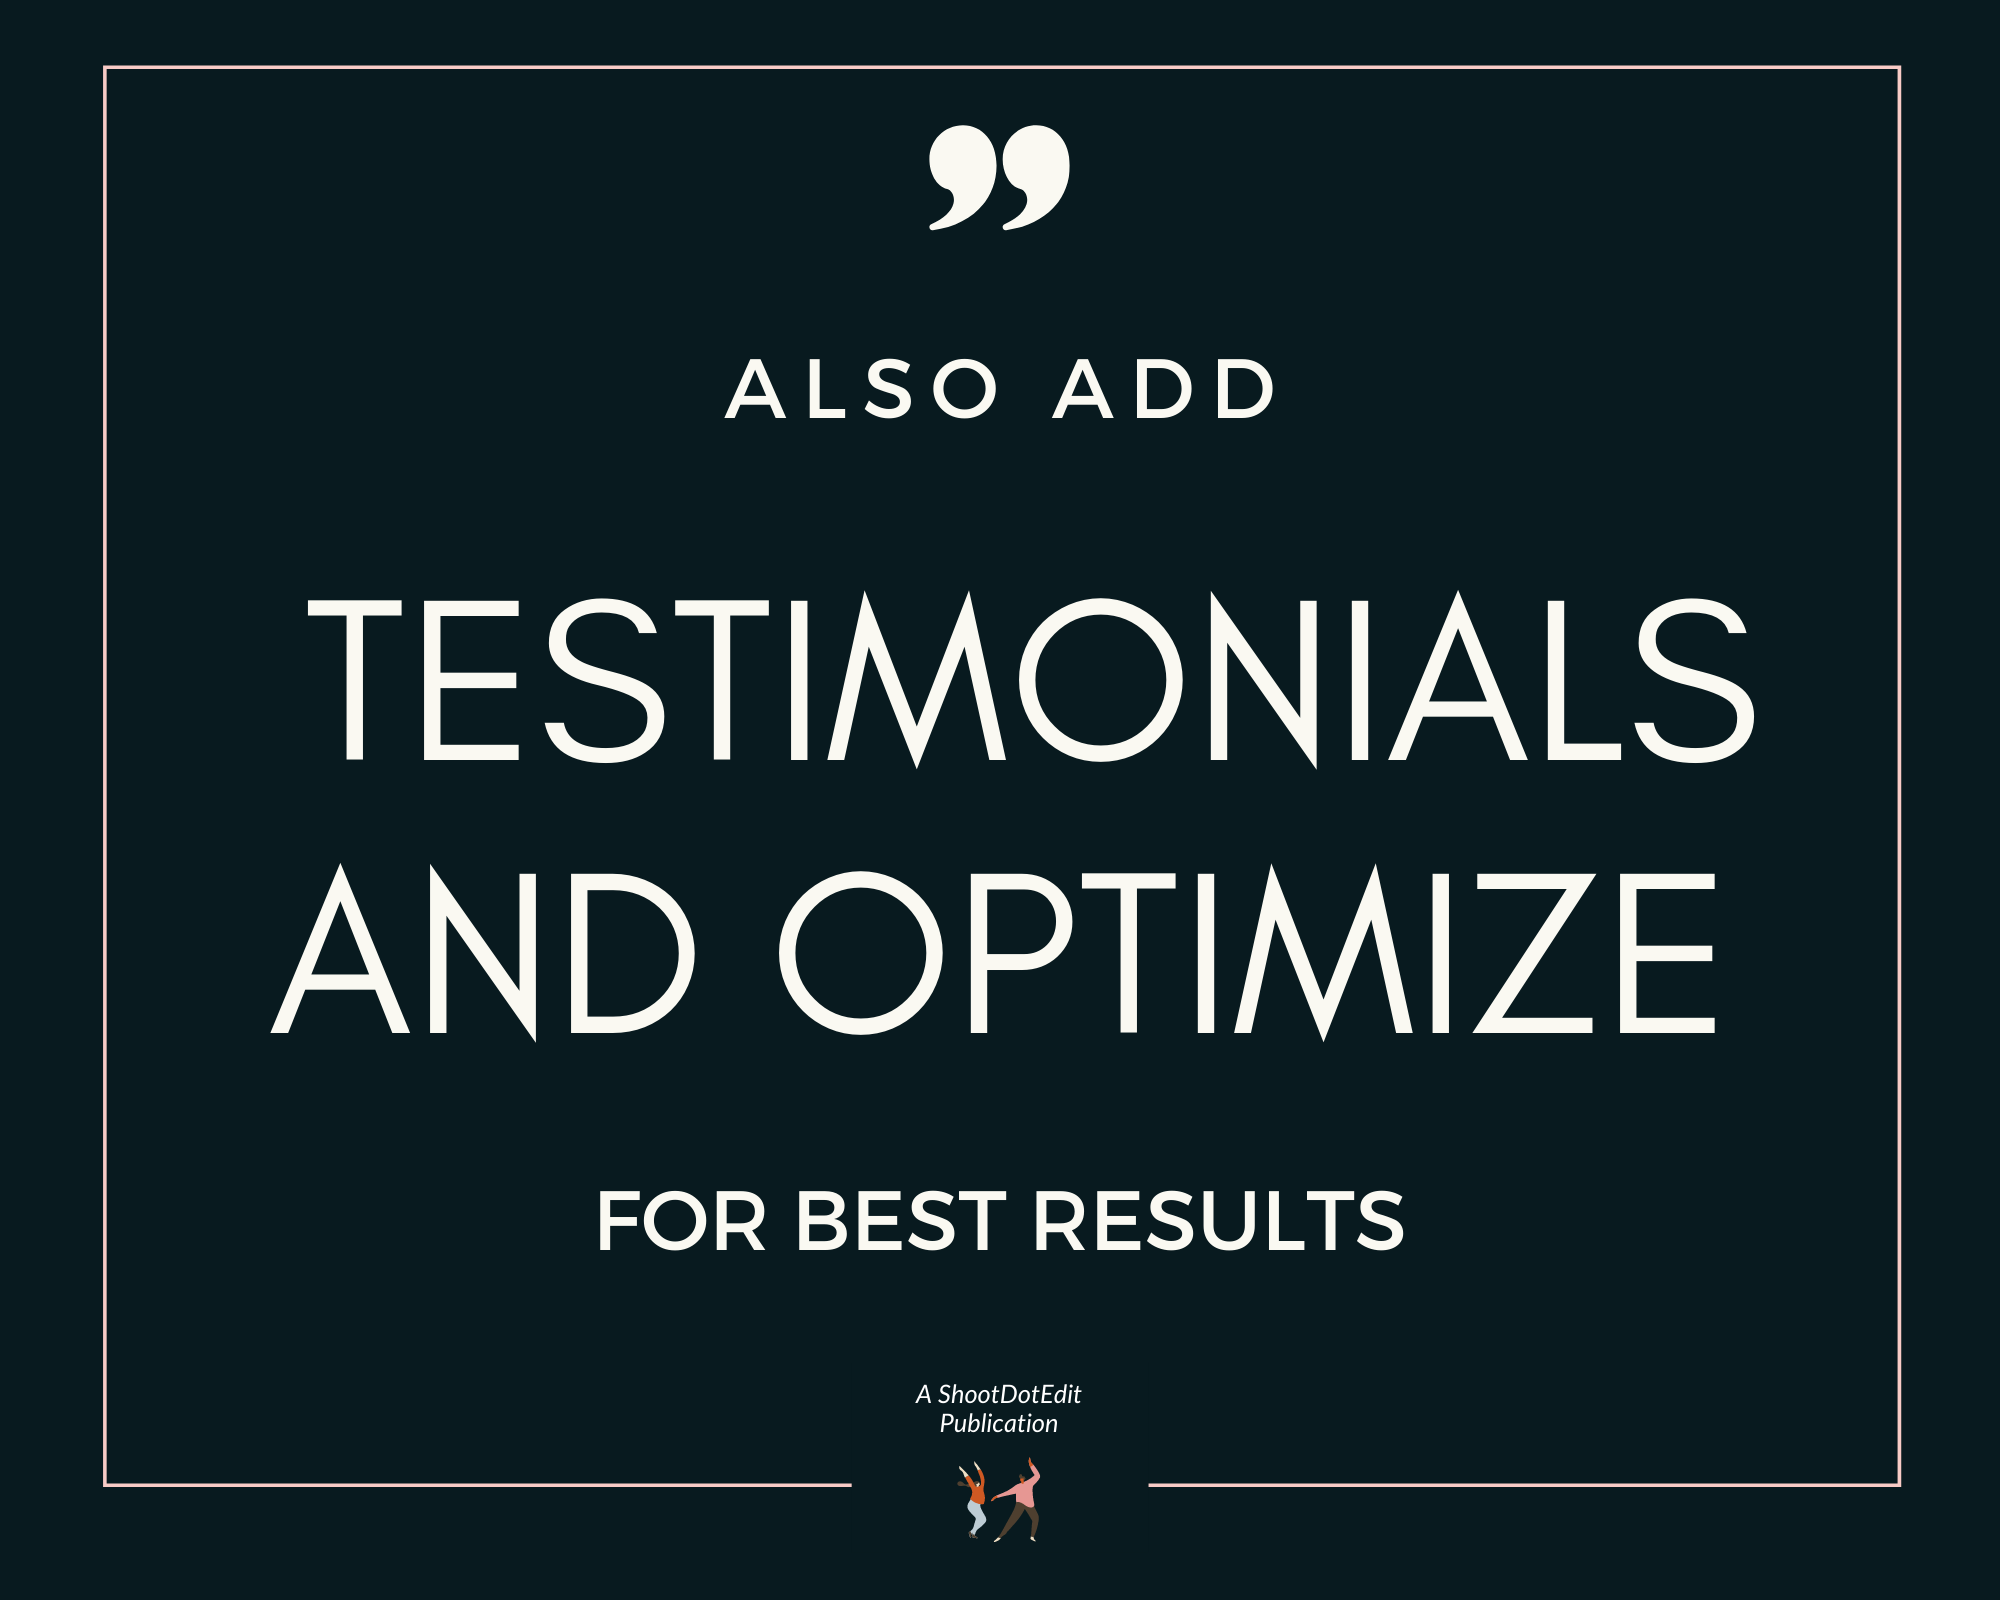 Infographic stating also add testimonials and optimize for best results